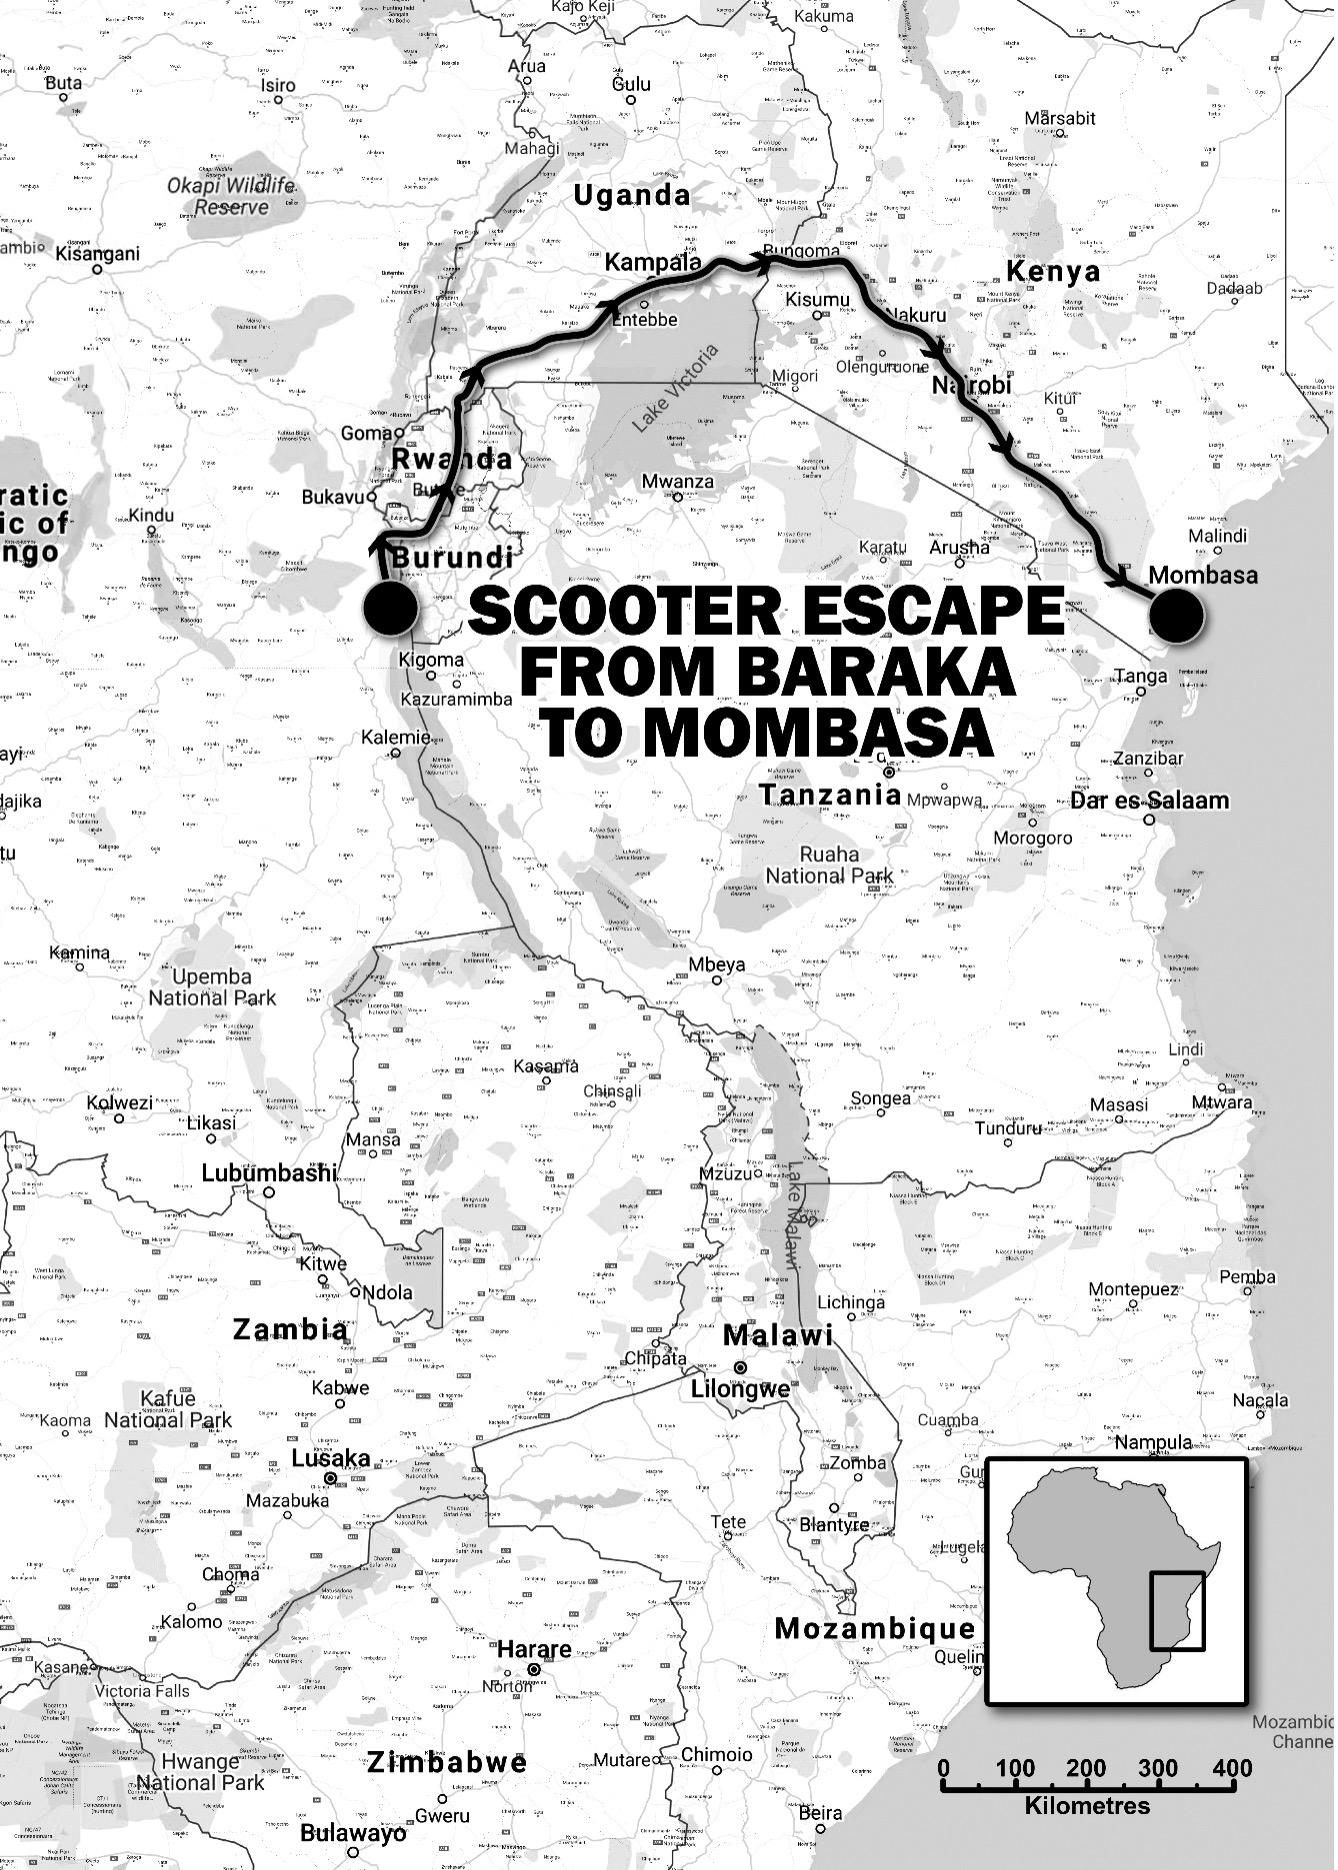 This is the route that Ron took on his escape, to become Twice a Refugee